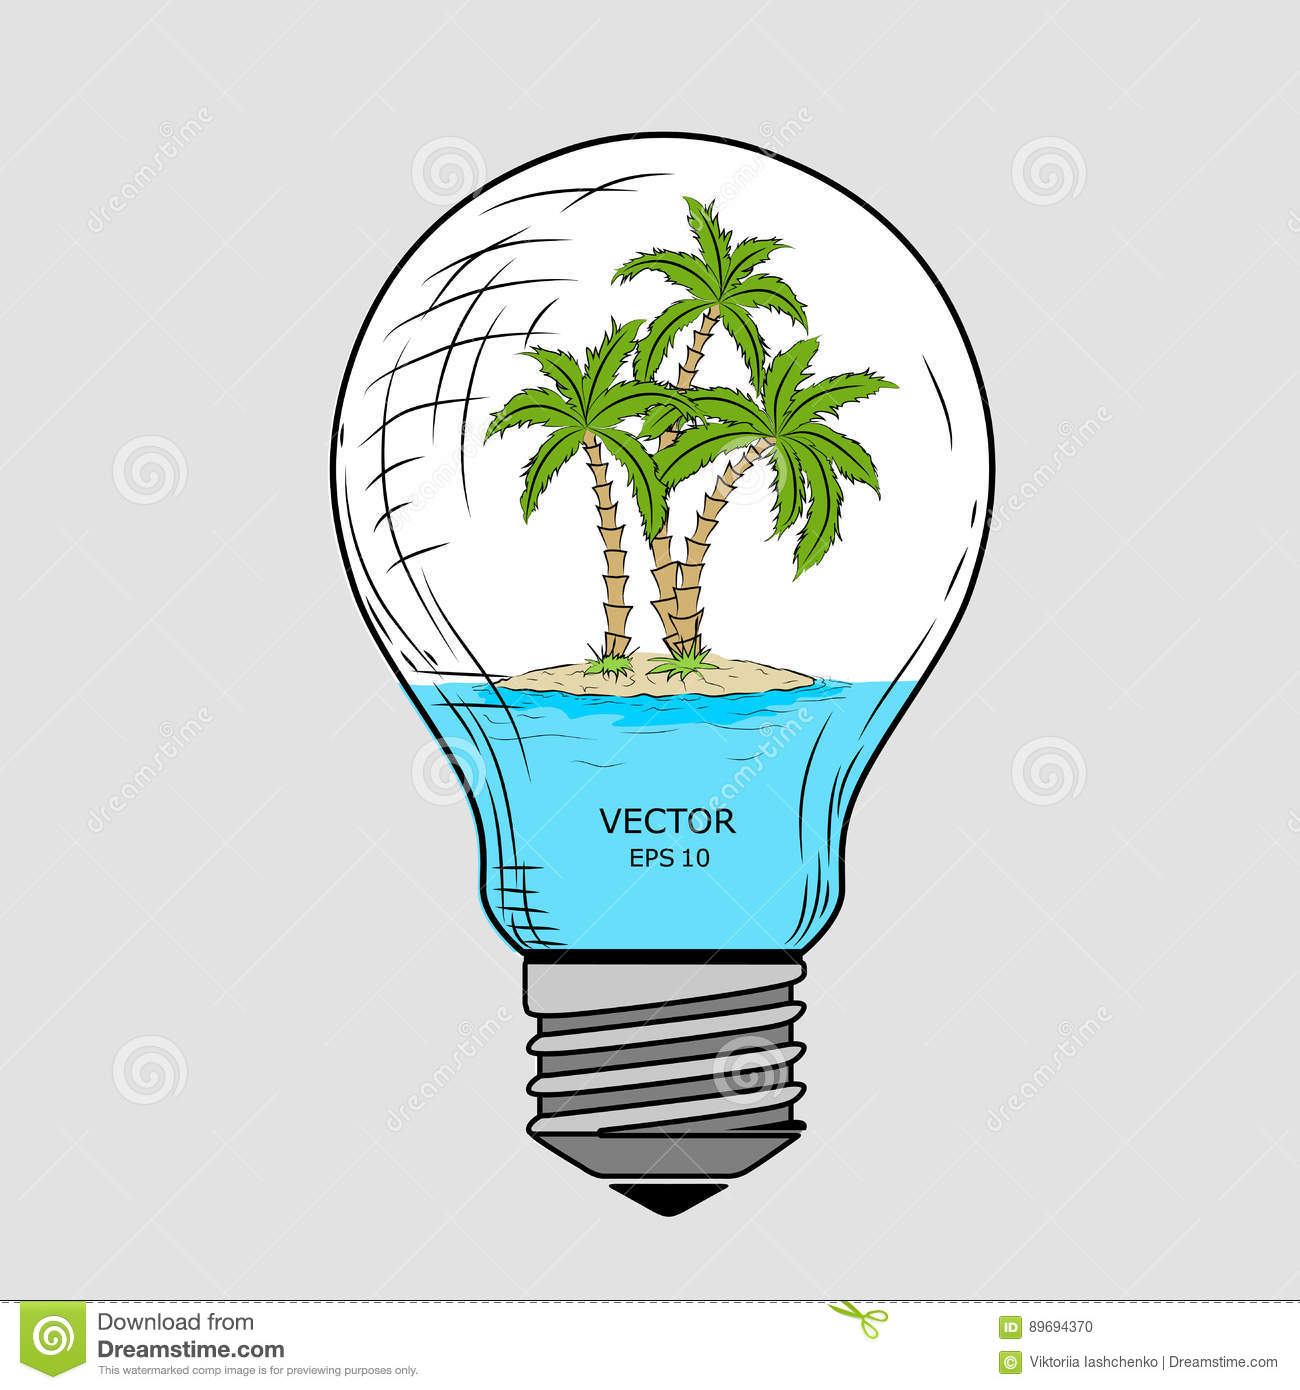 Glass Lamp Vector Island With Palm Trees Inside A Glass Lamp Vector Light